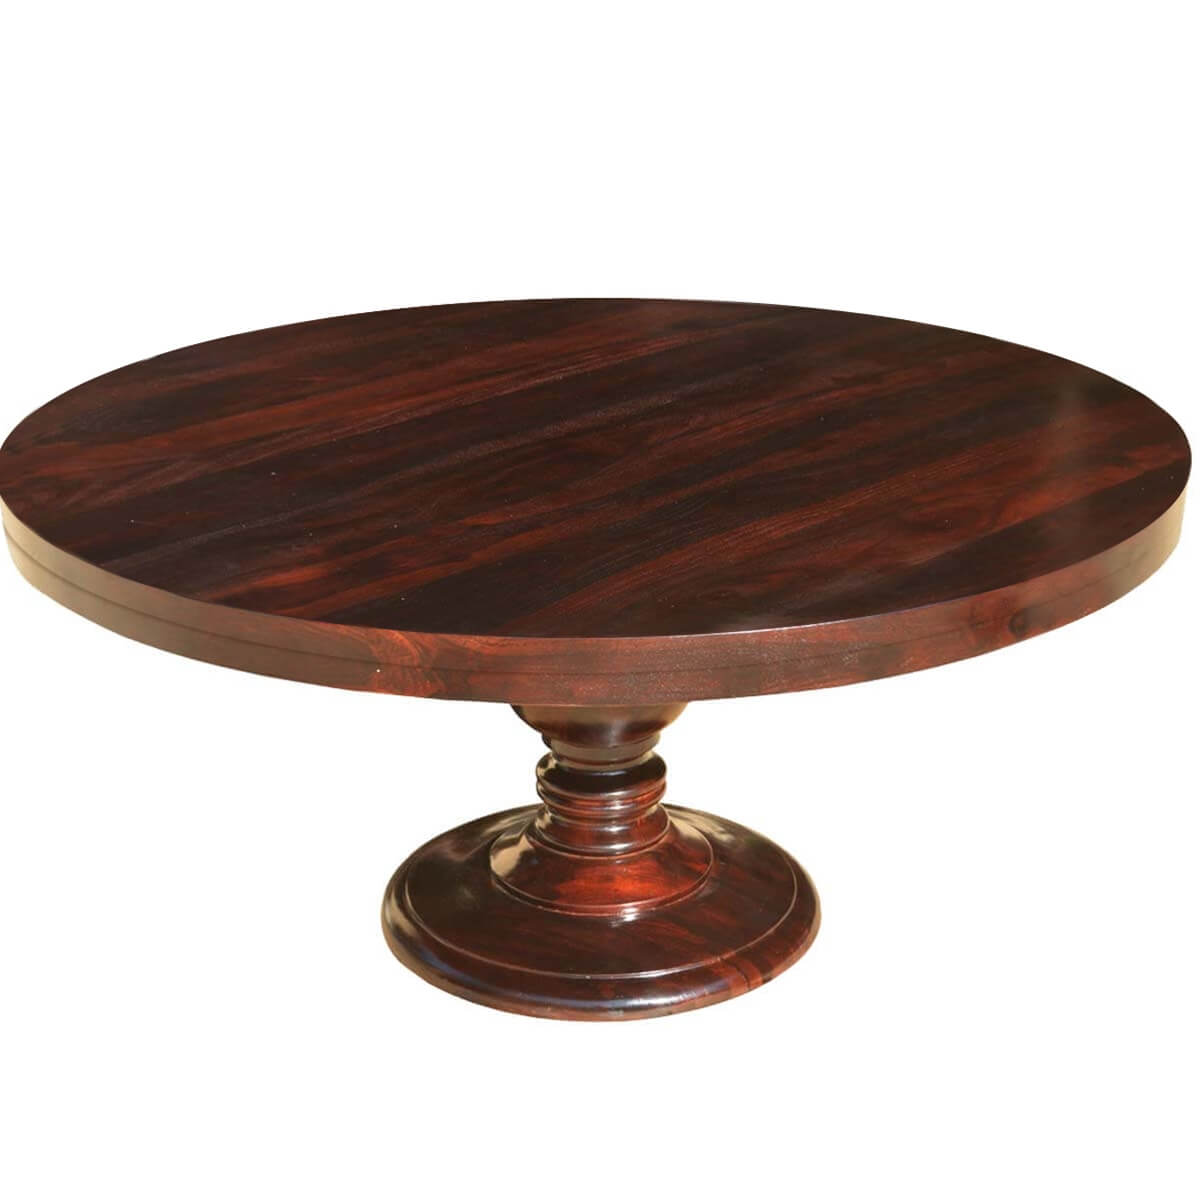 Colonial American Solid Wood Pedestal 66 Round Dining Table